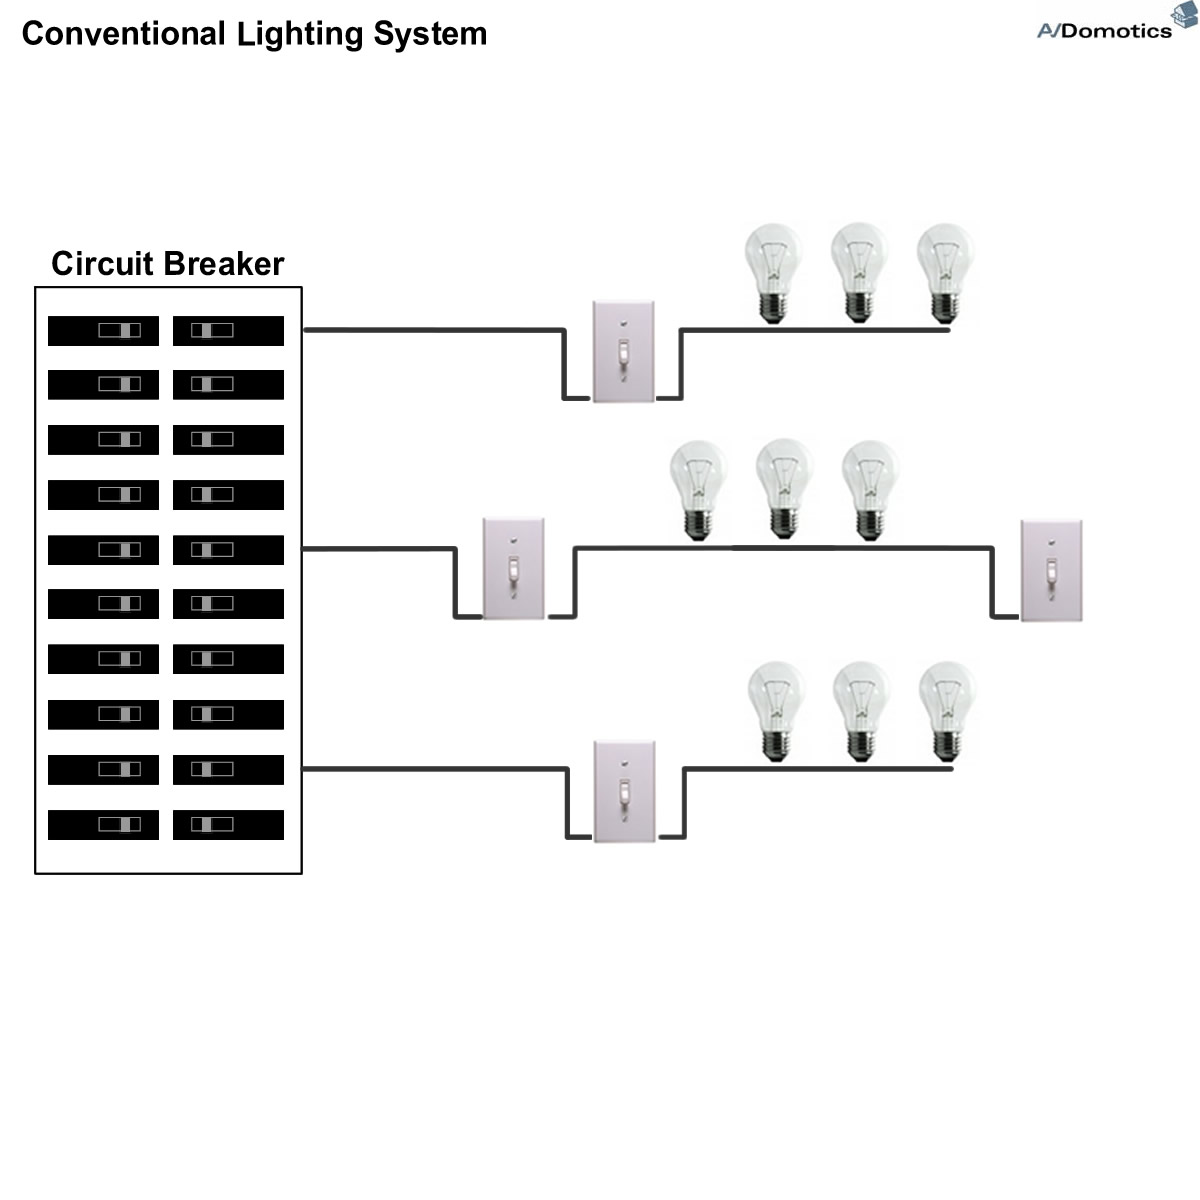 Ldr Circuit Diagram 230v together with Ldr Circuit Diagram 230v moreover 2012 Tesla Wiring Diagrams together with pare as well Porch Light Wiring Diagrams. on porch light wiring diagram